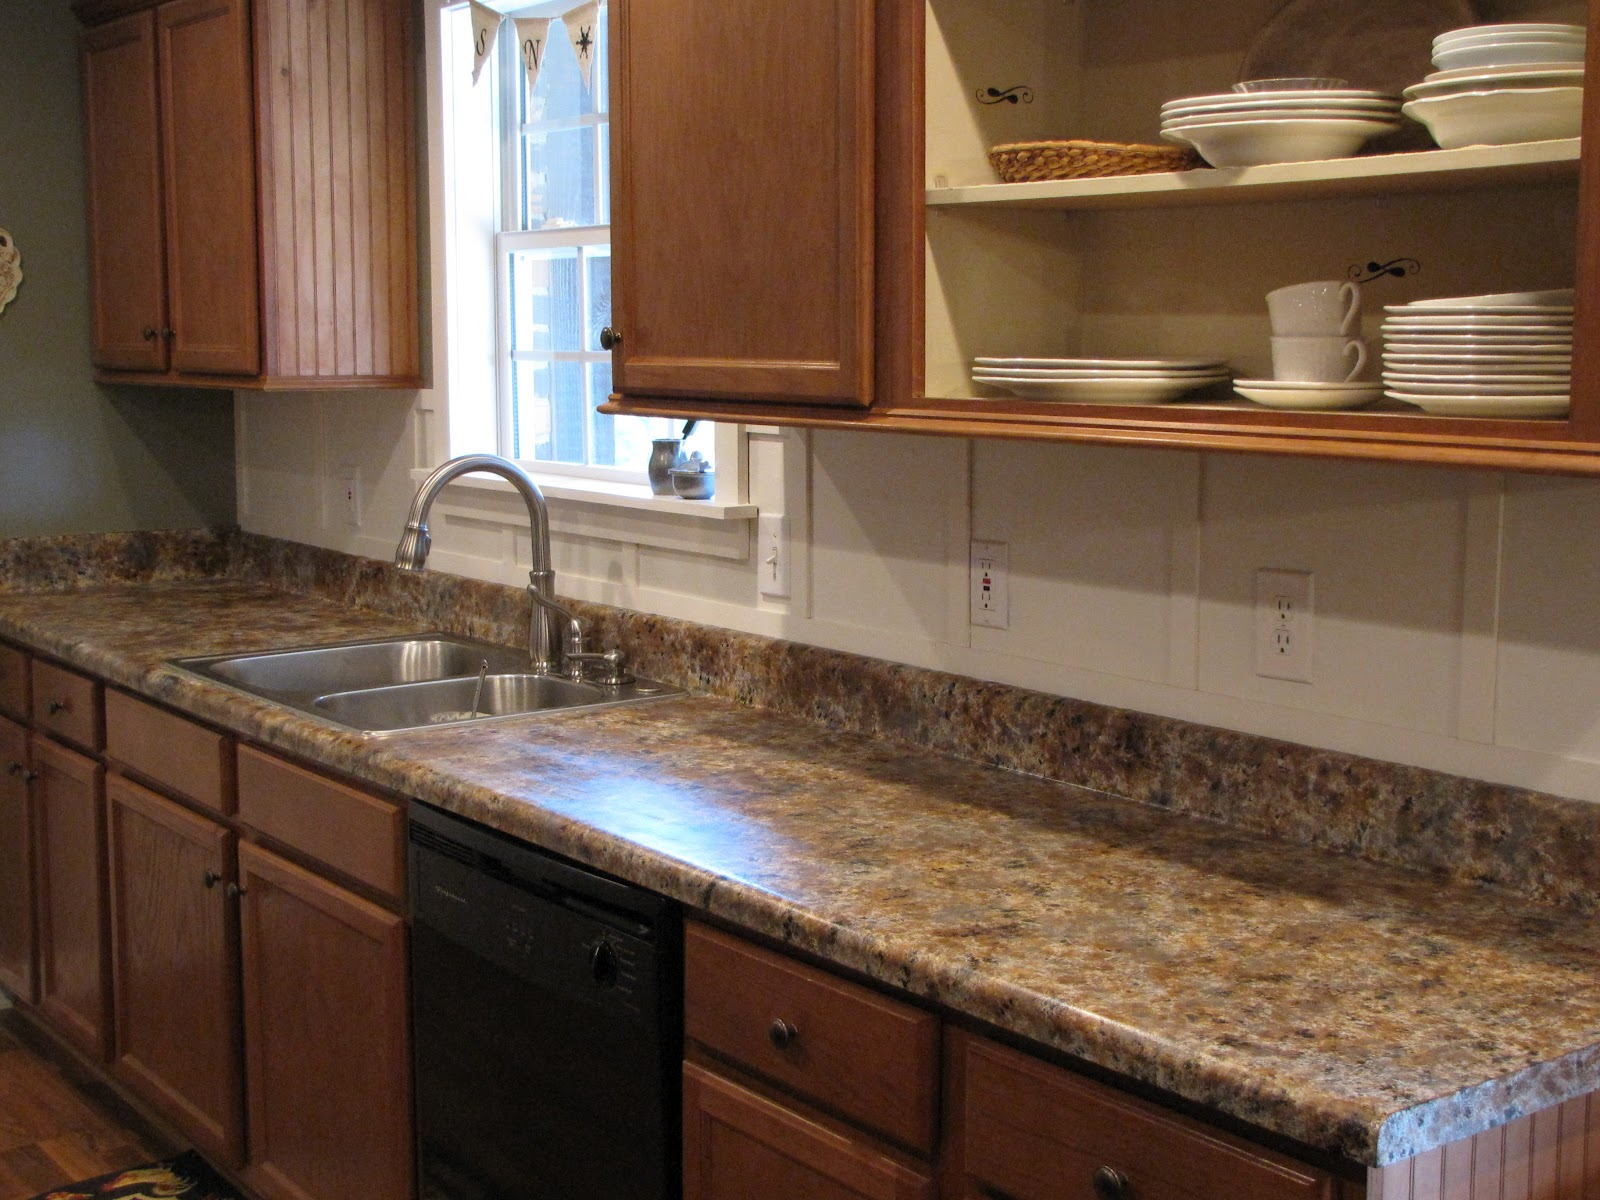 Kitchen Countertops Of Painting Laminate Countertops In The Kitchen